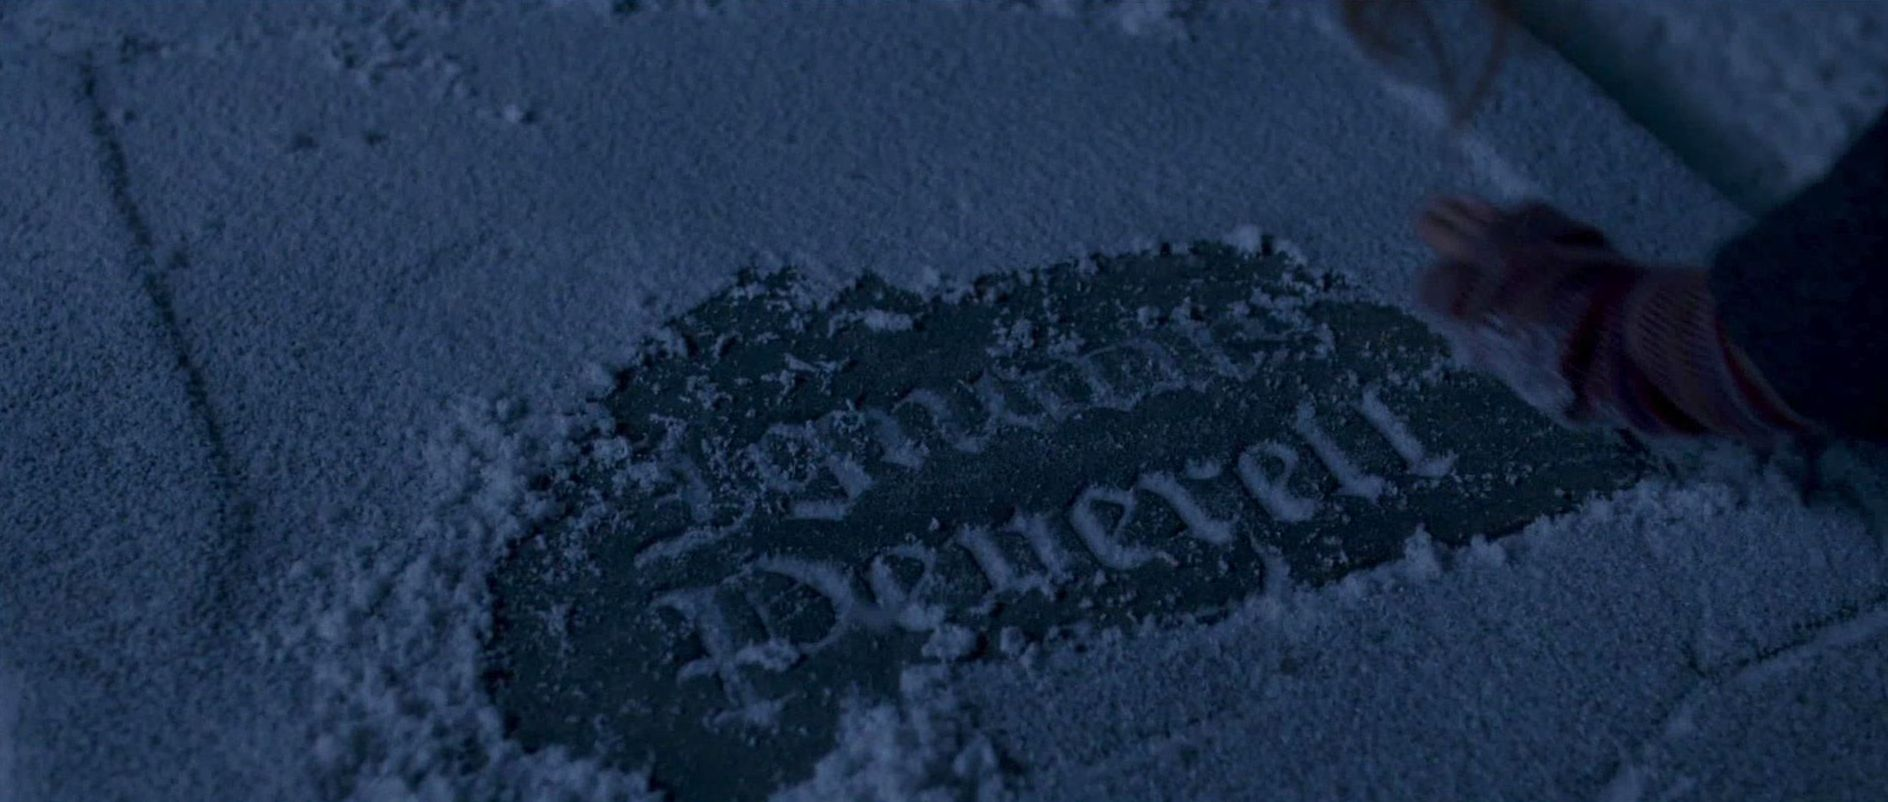 James And Lily Potter Grave Harry potter wiki